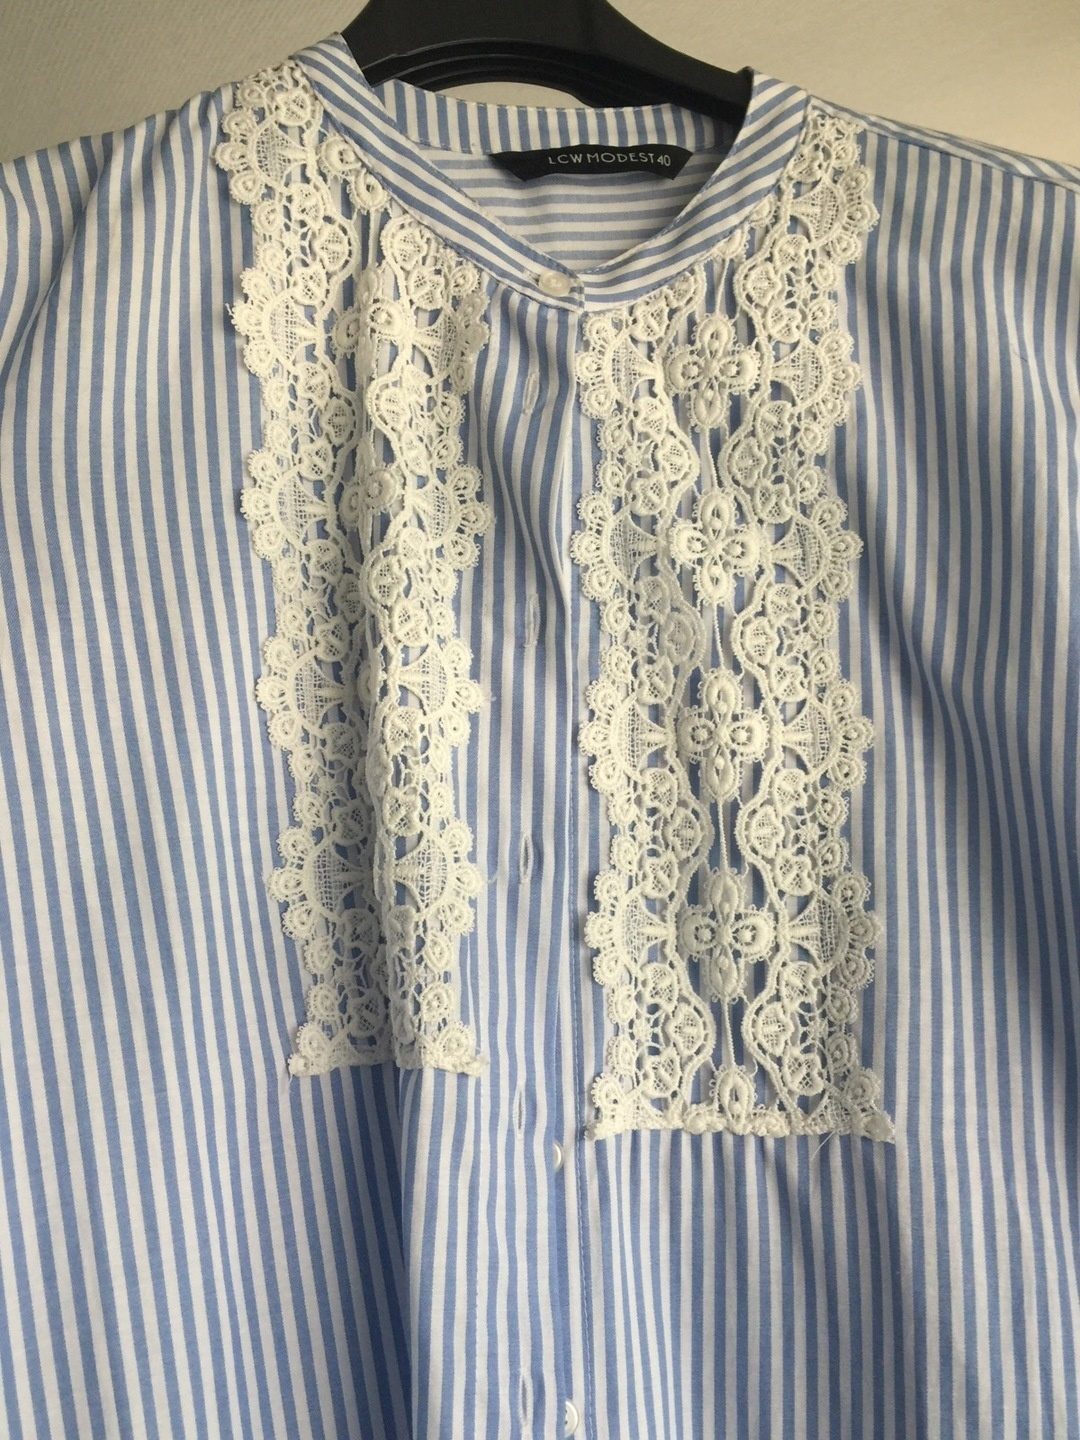 Women's blouses & shirts - LC MODEST photo 2